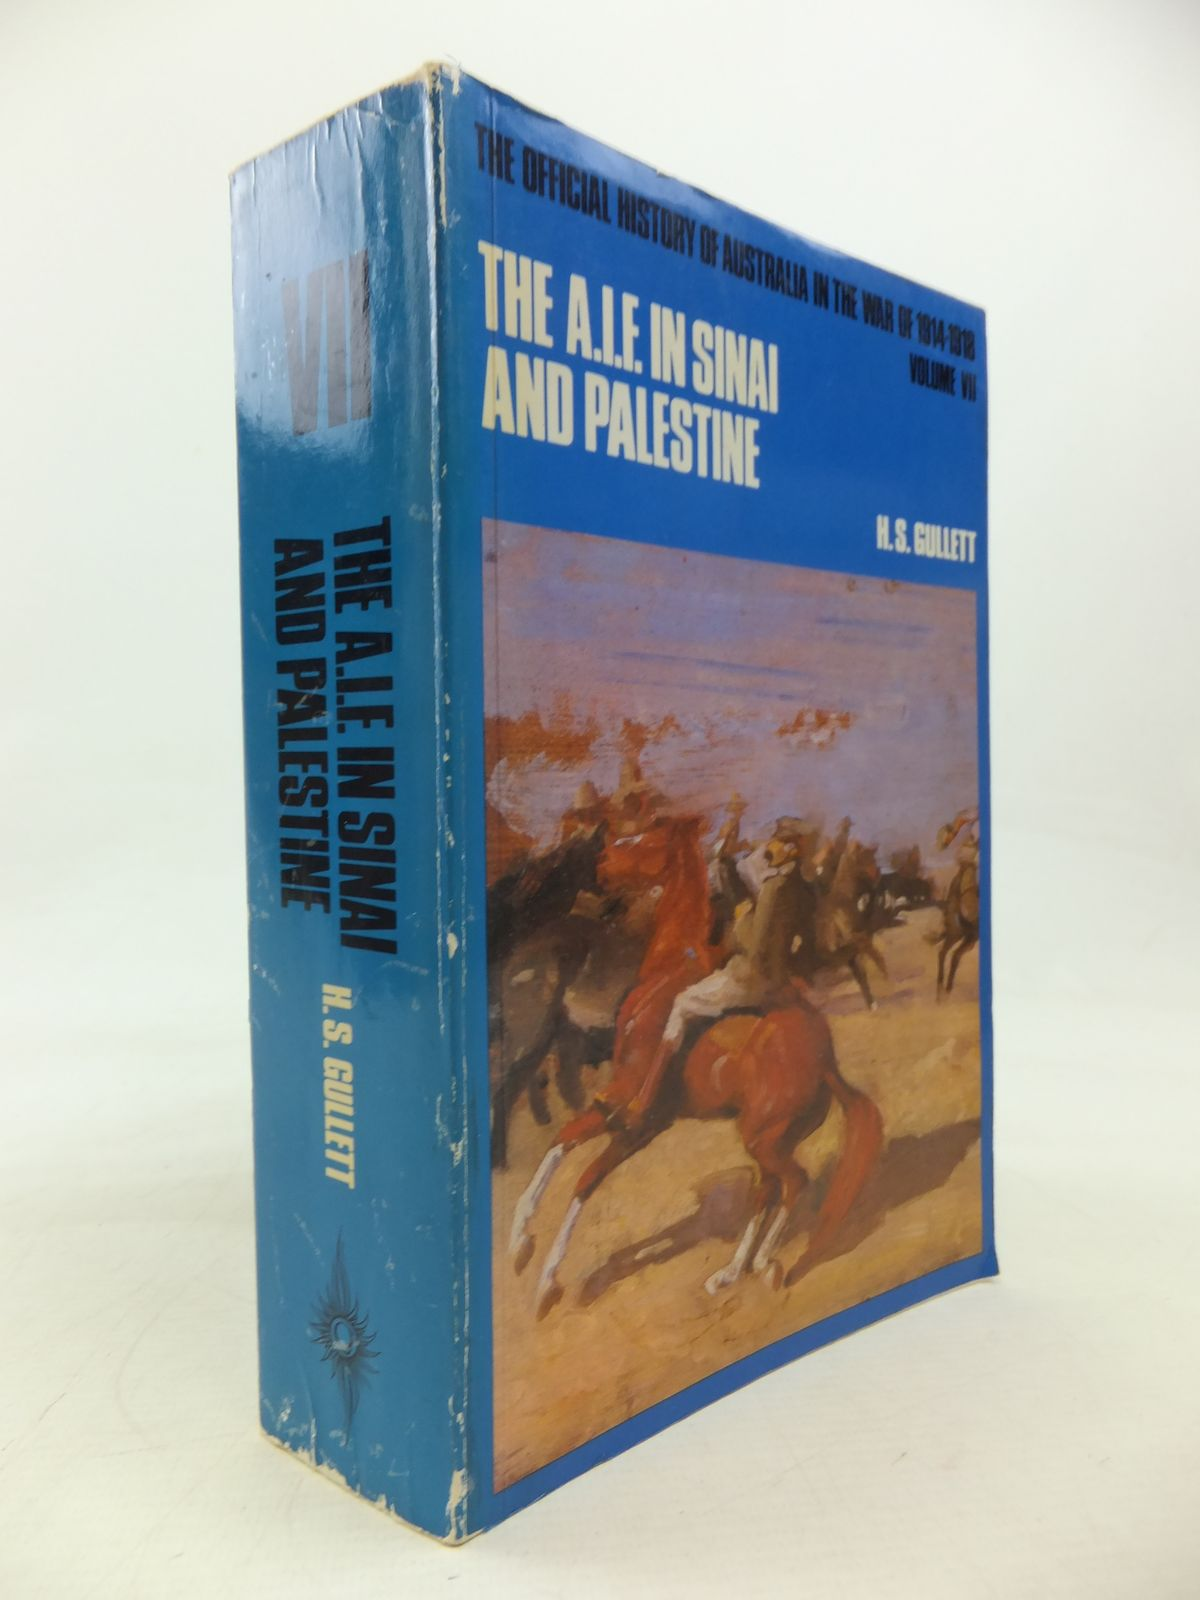 Photo of THE AUSTRALIAN IMPERIAL FORCE IN SINAI AND PALESTINE 1914-1918 written by Gullett, H.S. published by University Of Queensland Press (STOCK CODE: 1810603)  for sale by Stella & Rose's Books